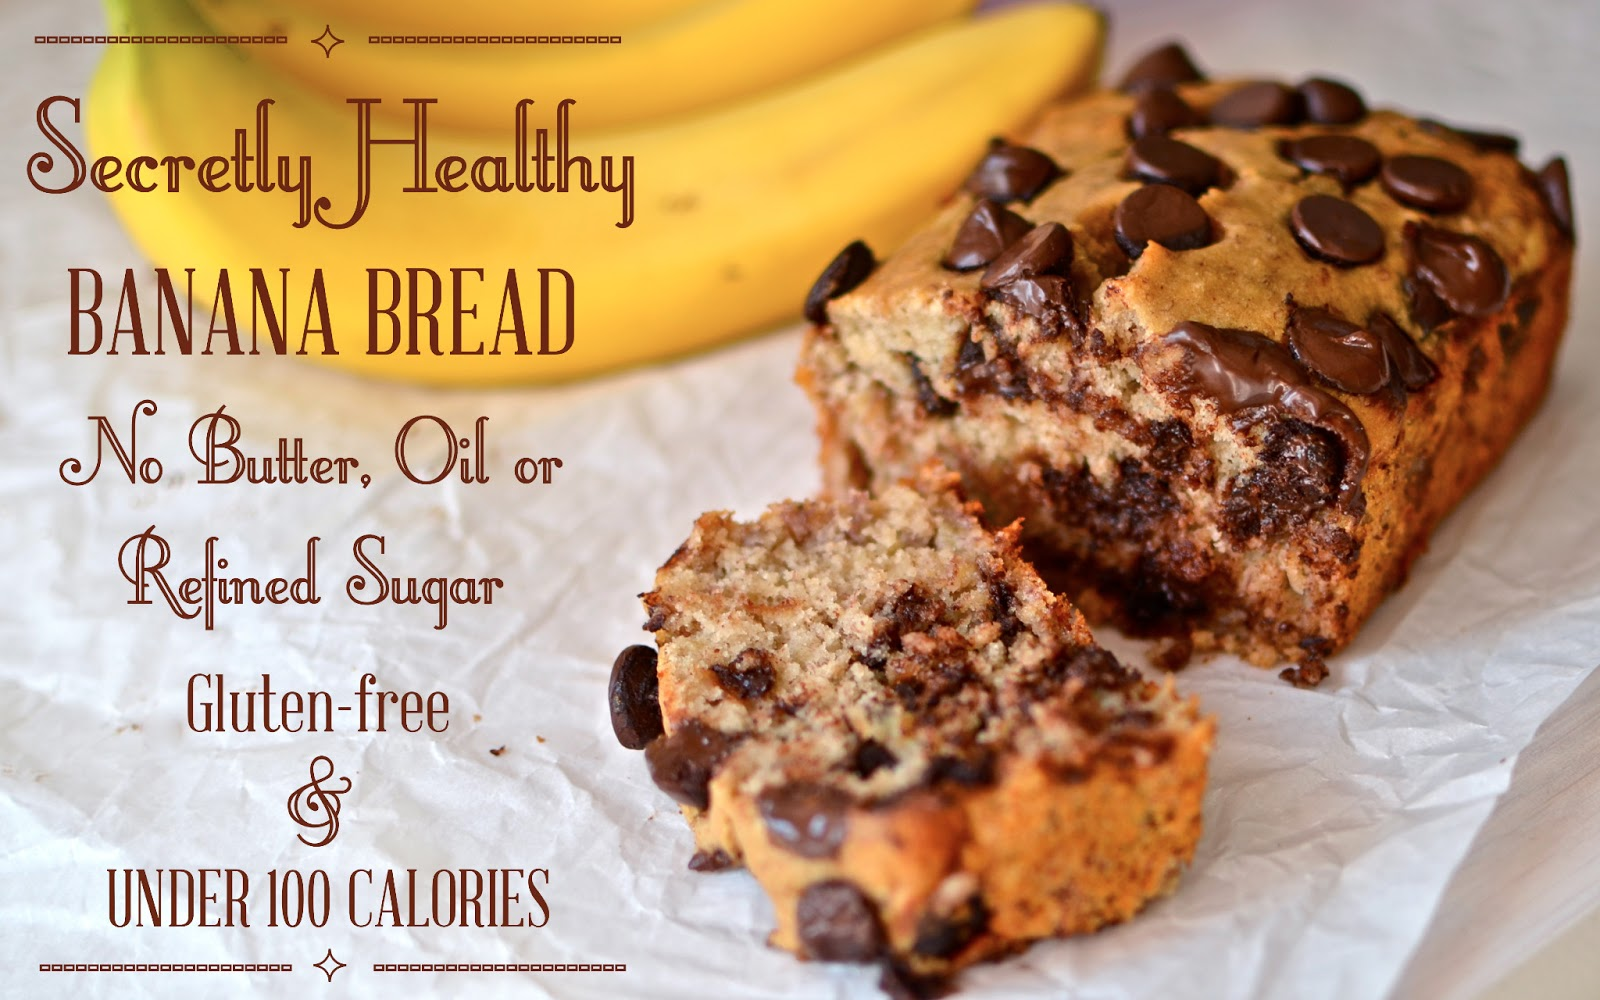 Yammie S Glutenfreedom Secretly Healthy Banana Bread